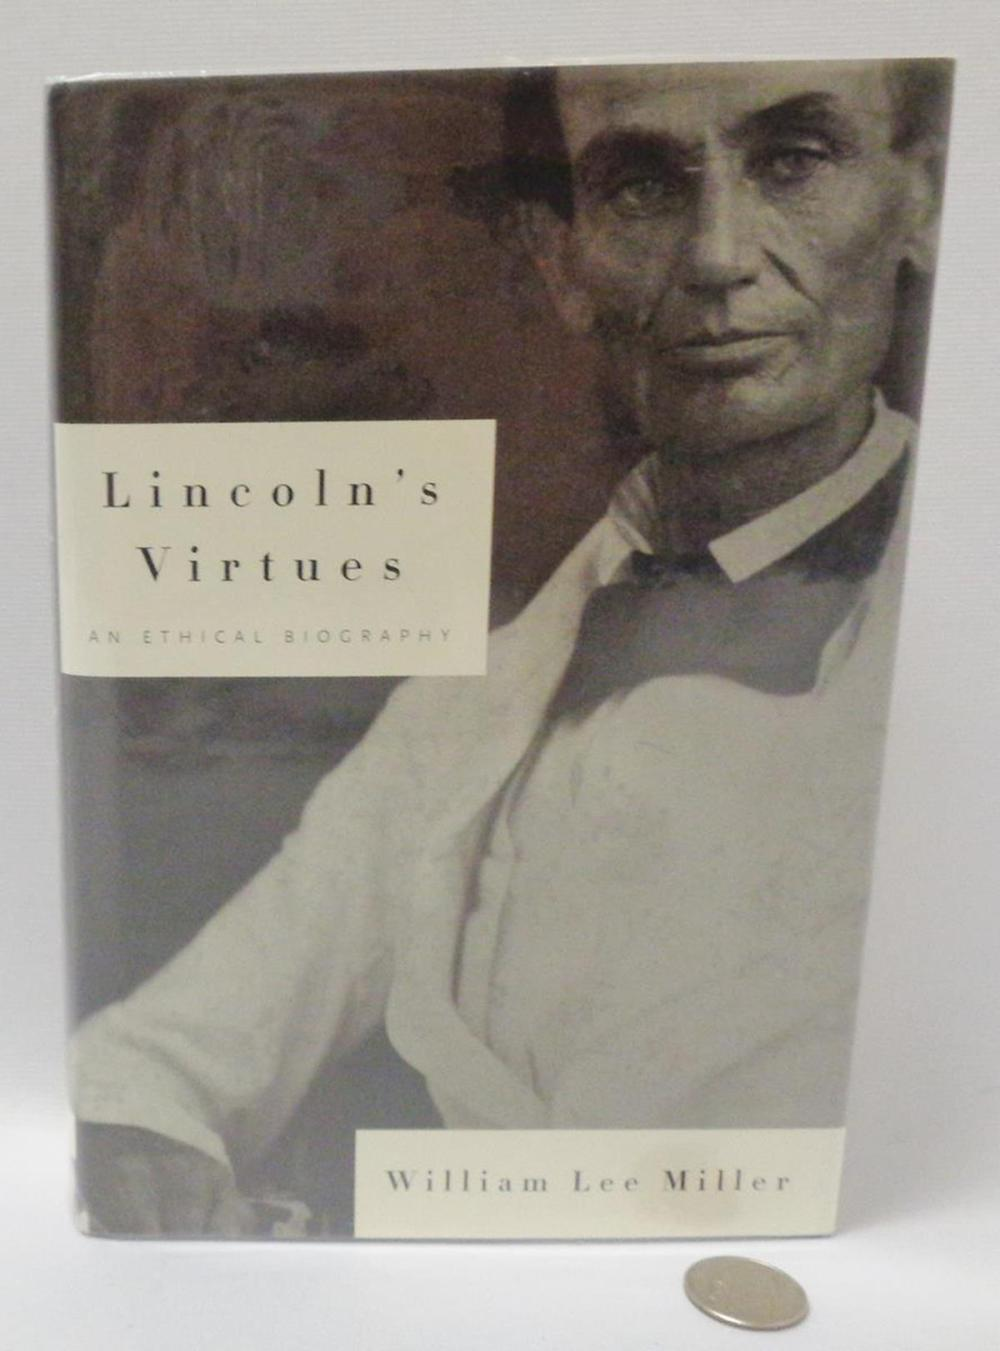 2002 Lincoln's Virtues: An Ethical Biography by William Lee Miller w/ Dust Jacket